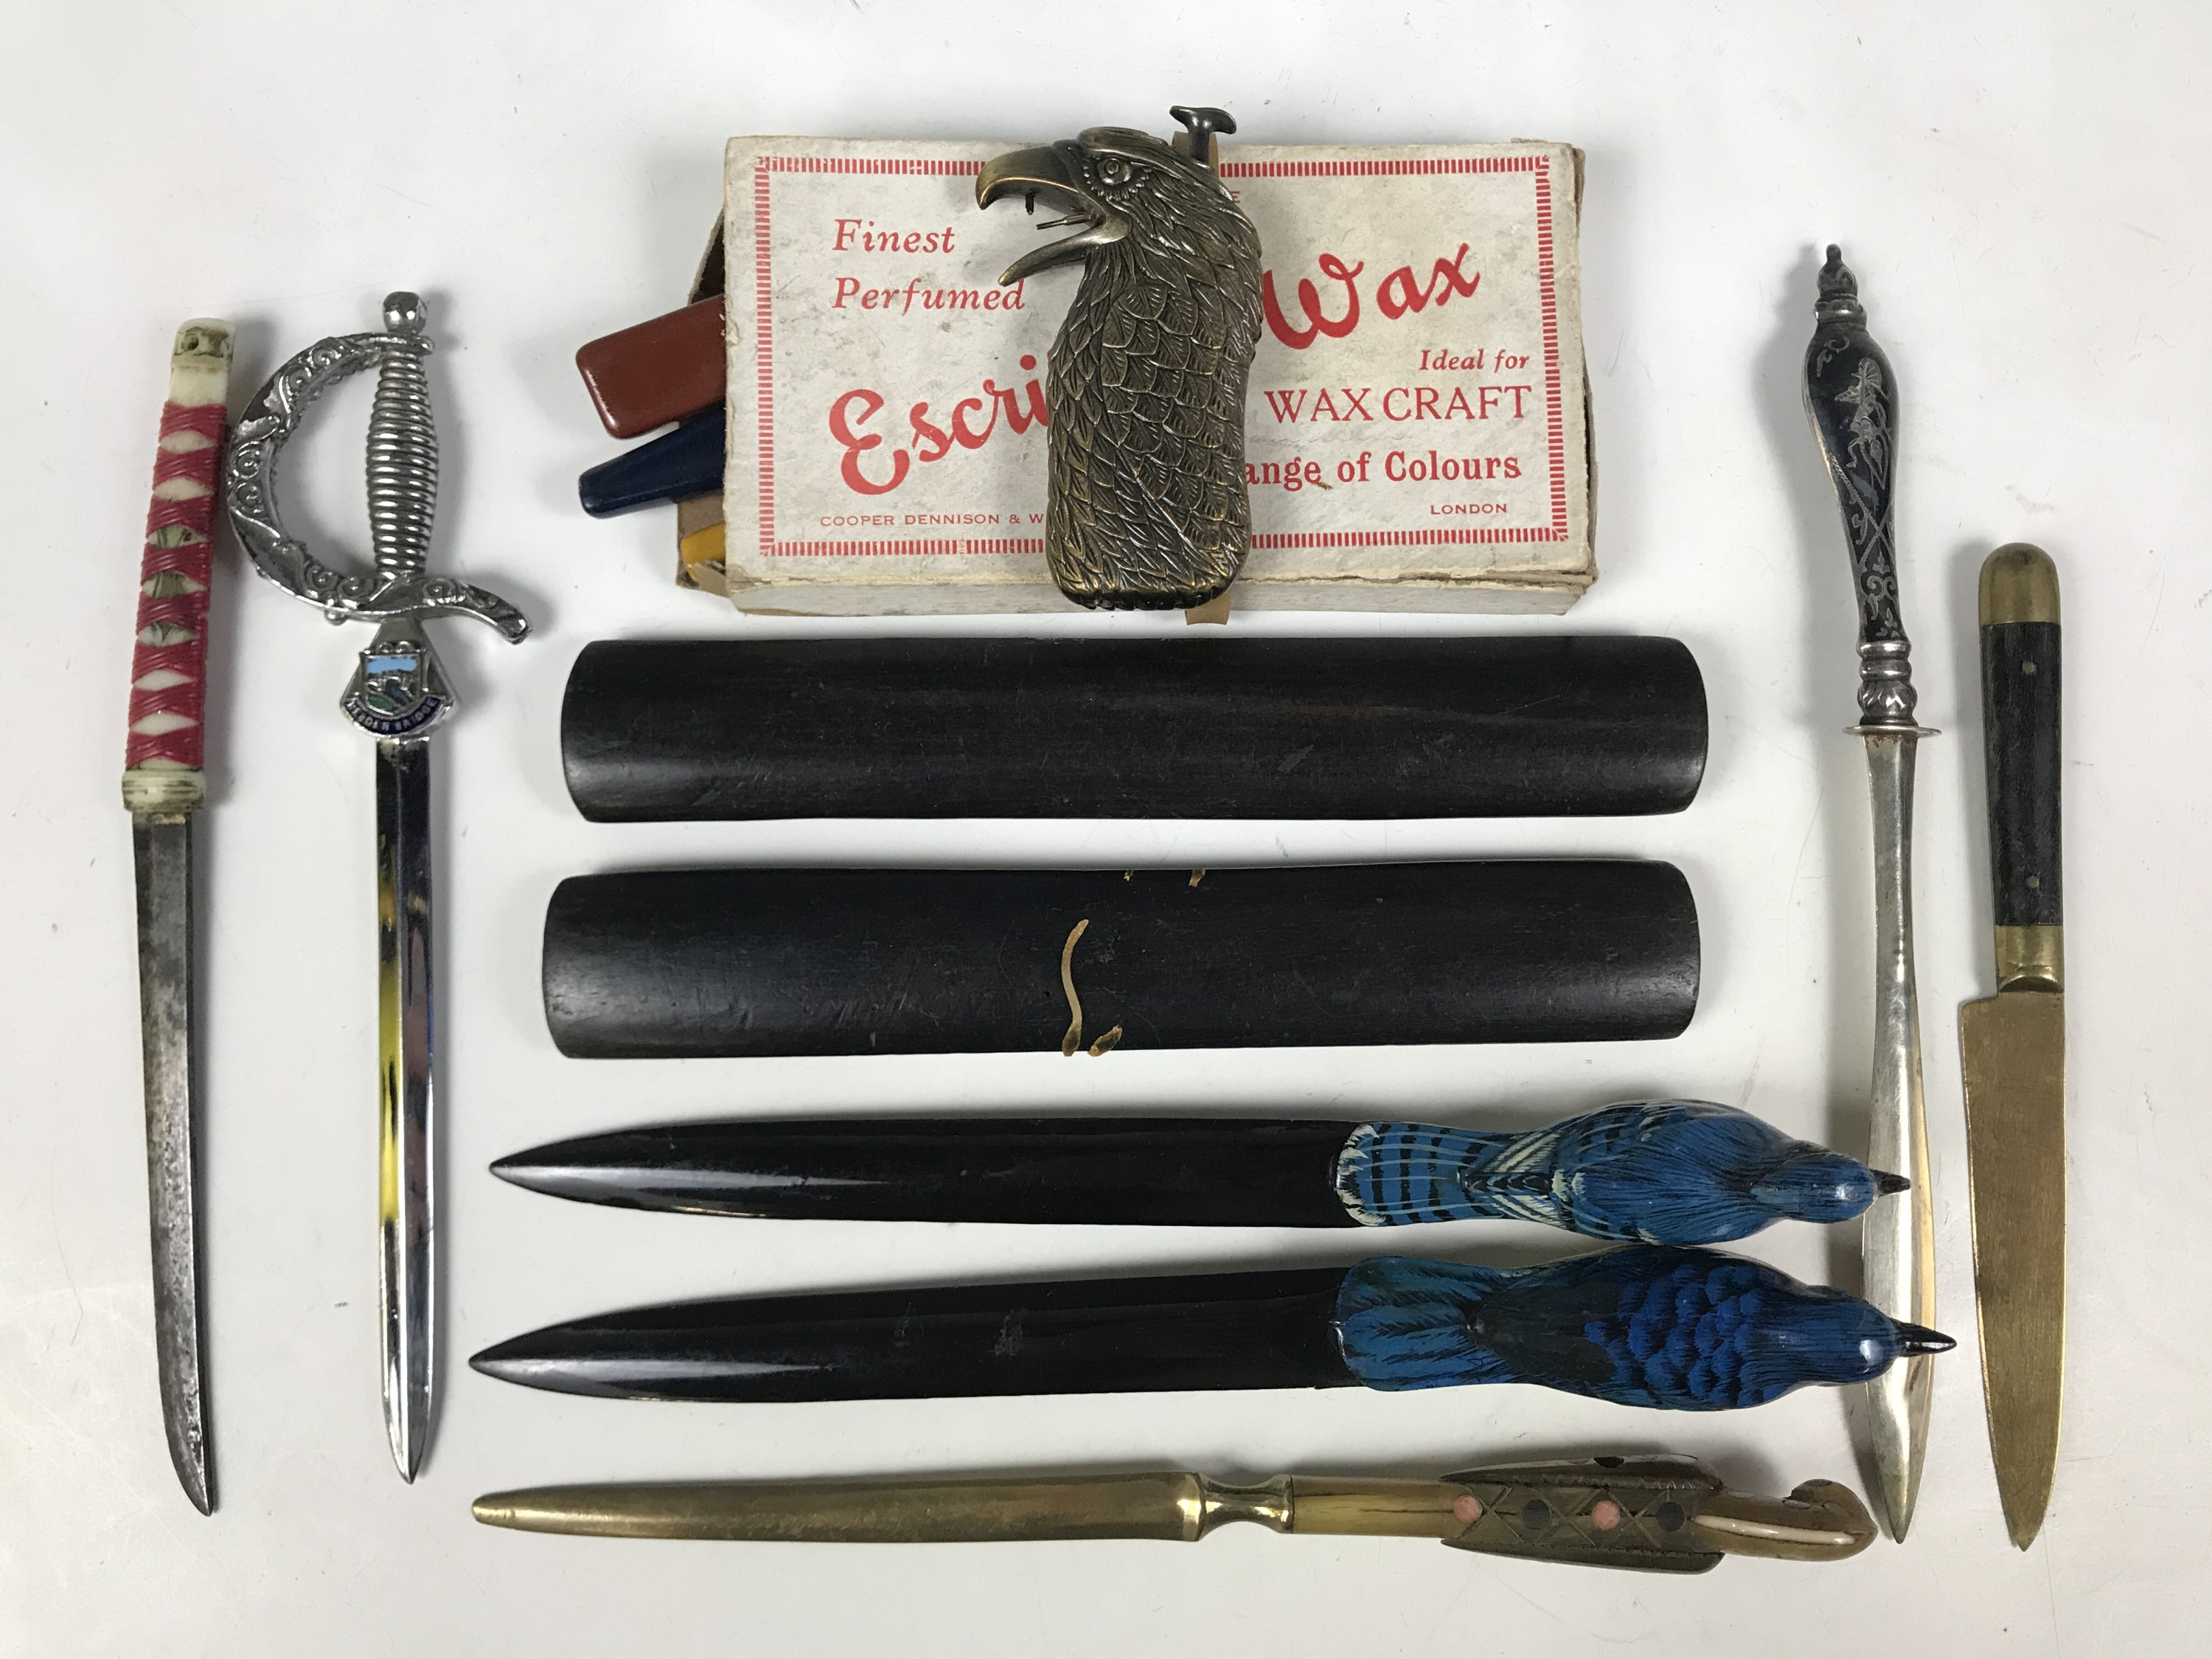 Lot 4 - A collection of paper / letter knives, boxed sealing wax, straight edges and a novelty lighter